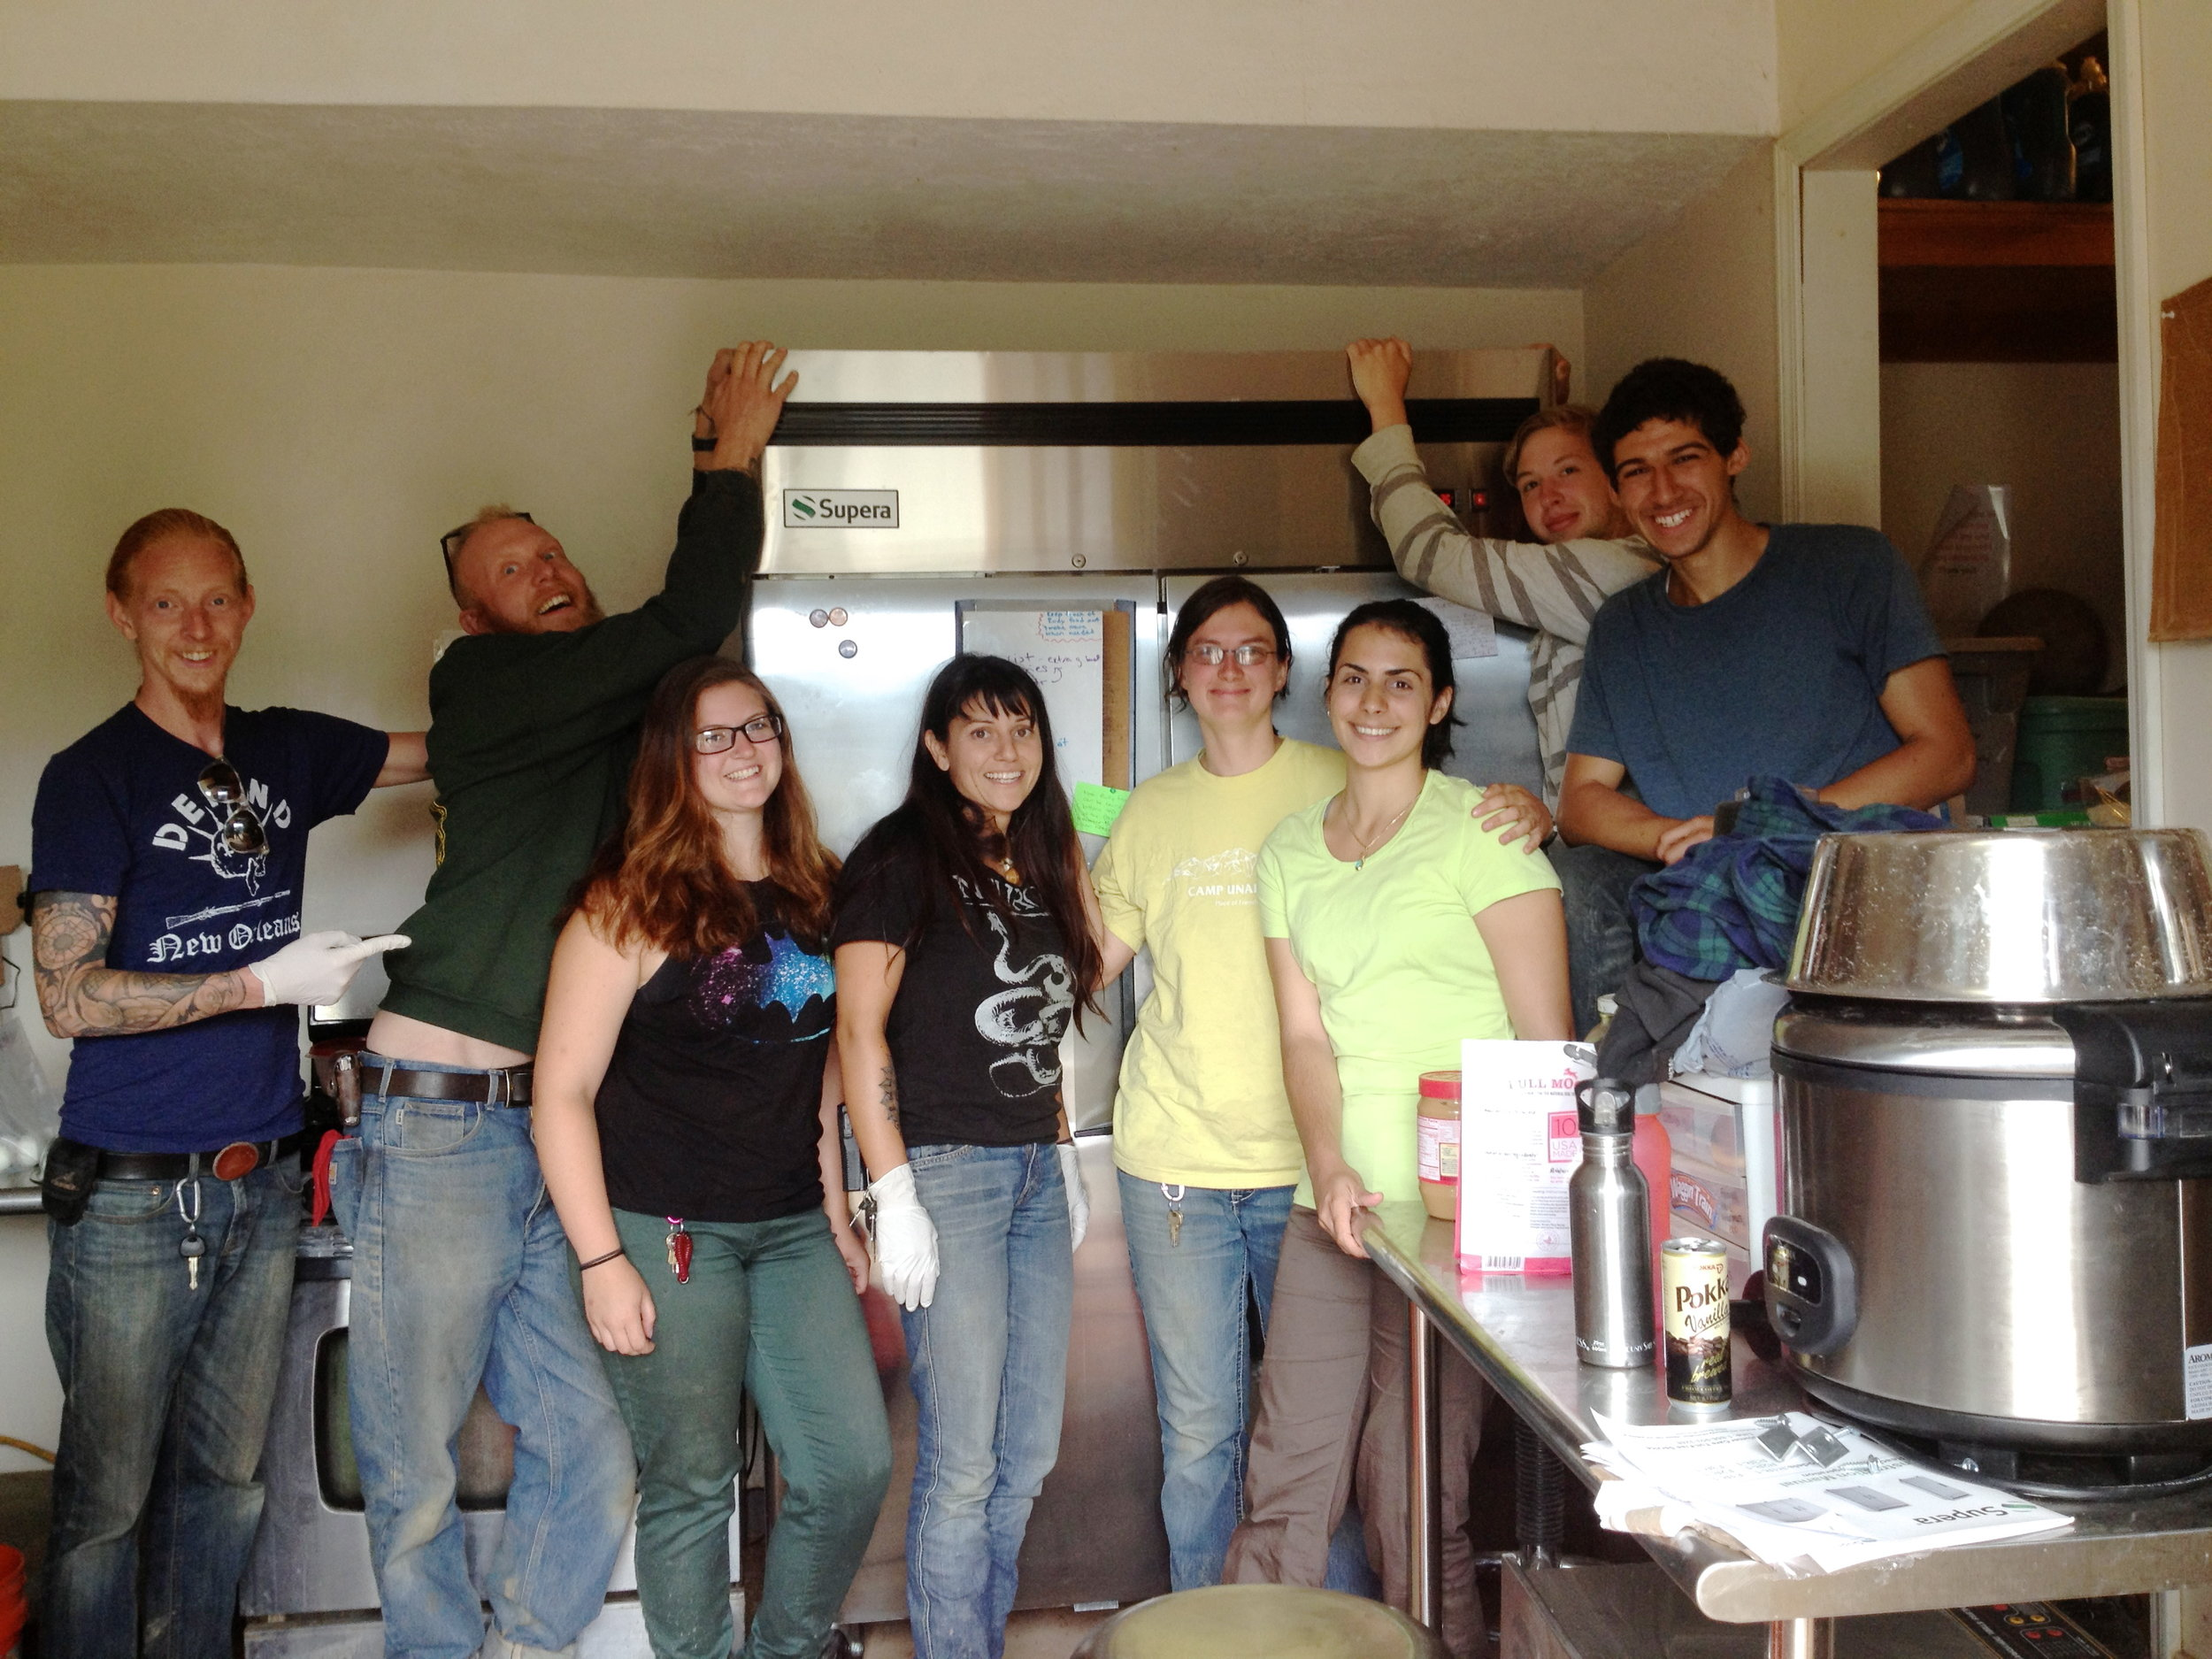 Above: Chadley, Eric, Sumitra, Amy, Eva, Paul and Mo happily pose to thank a donor for her generous gift of a shiny new Wolf Kitchen refrigerator. Below (L to R): Jaeger resting on Nikki's shoulder after scent-rolling on her head. Chadley and Contessa saying a happy hello.